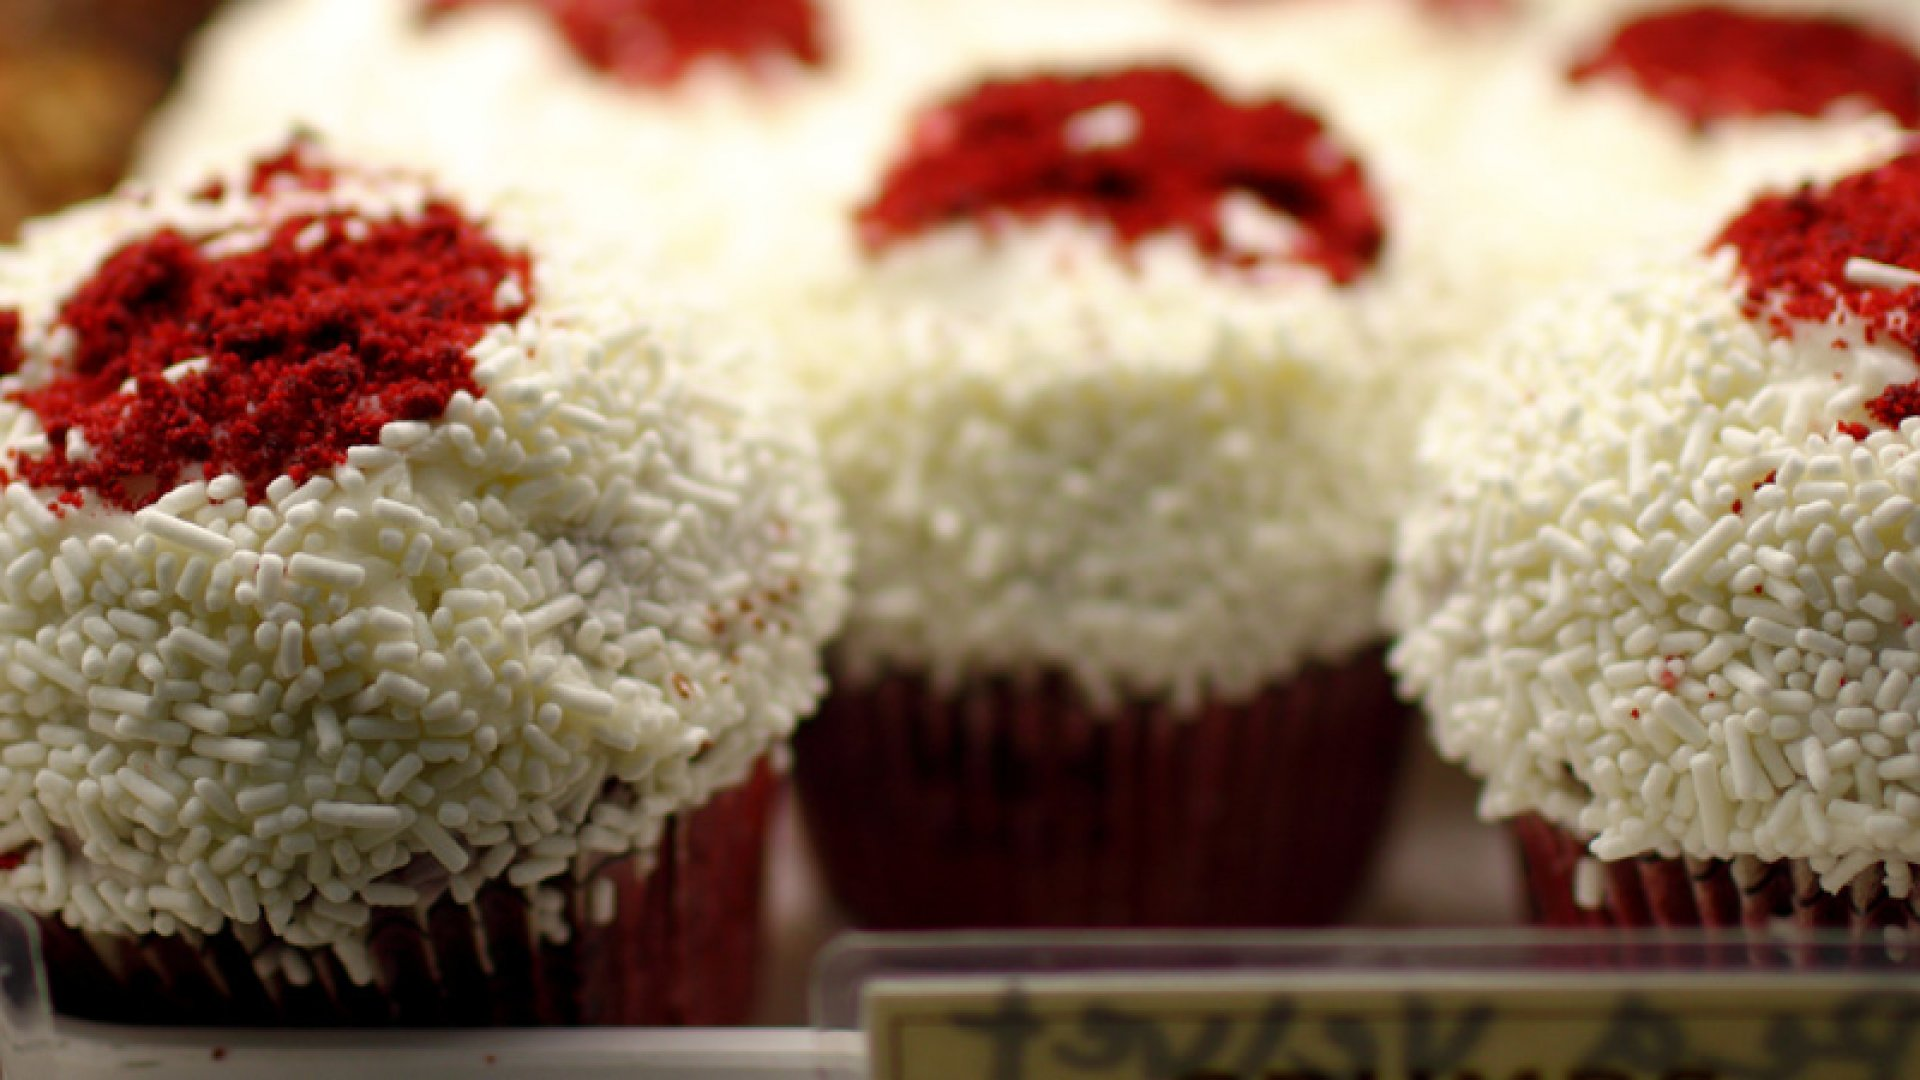 Why Crumbs Completely Fell Apart